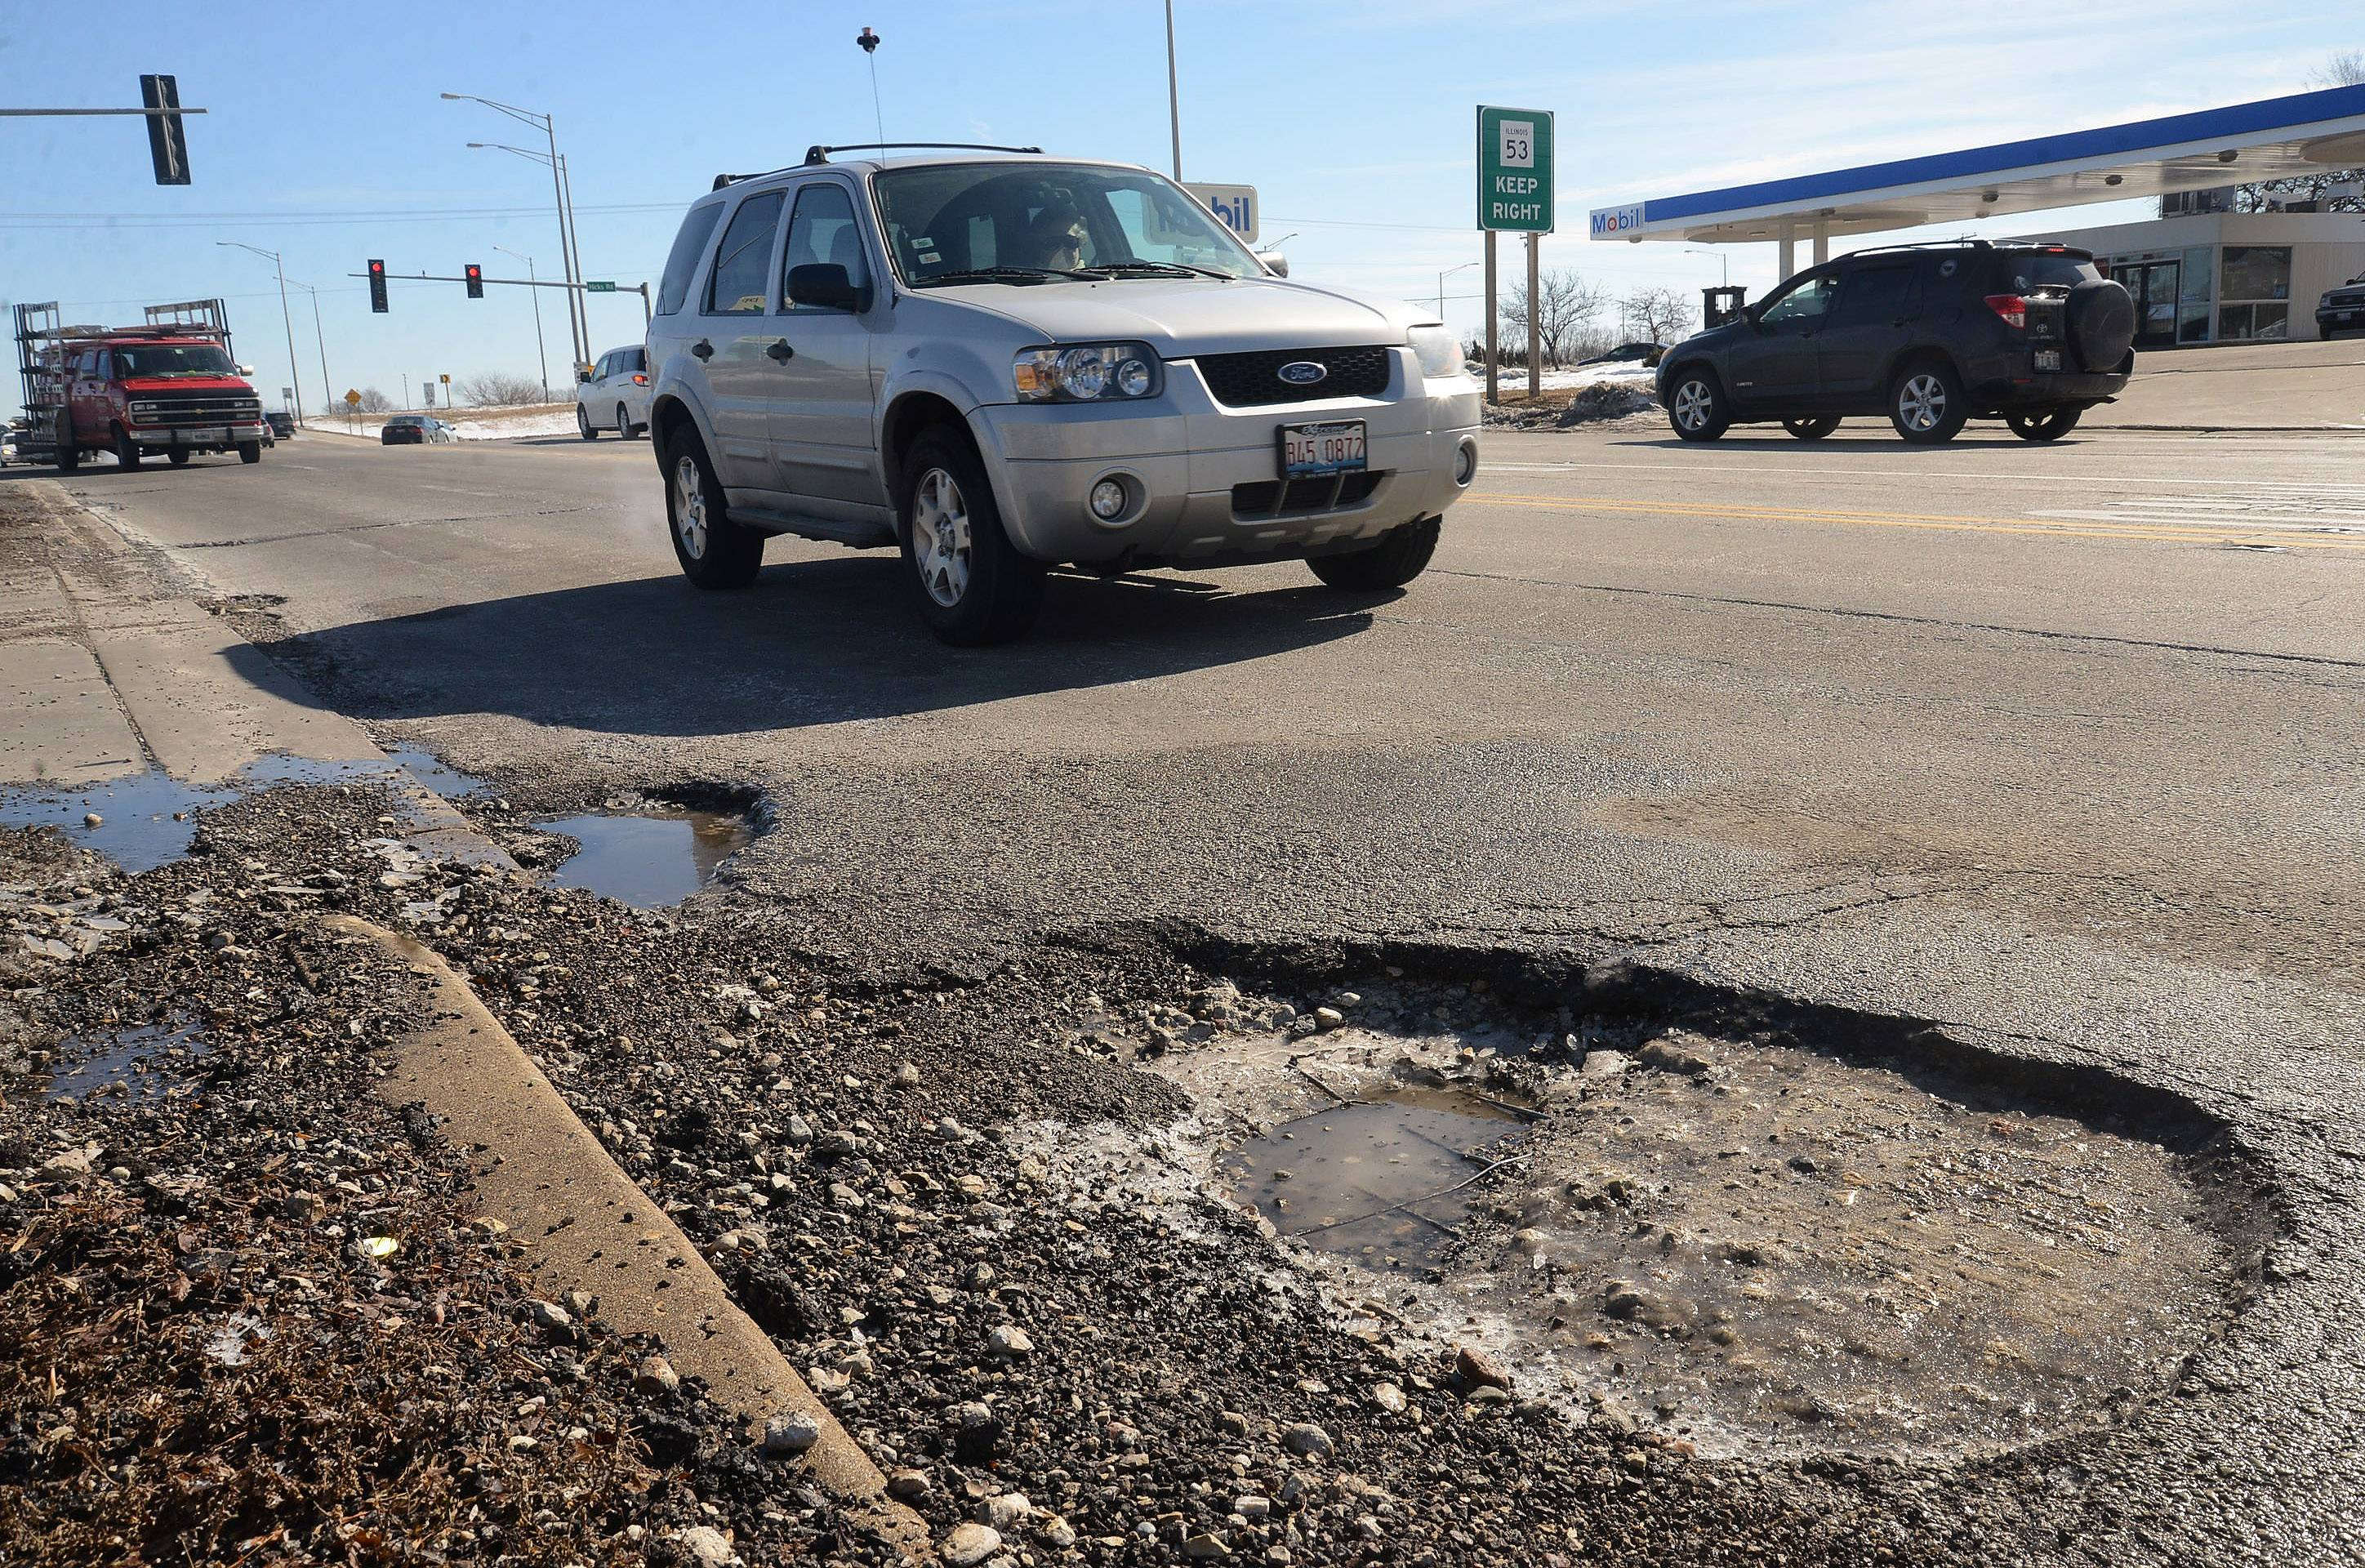 Are potholes inevitable, or can we prevent winter misery?